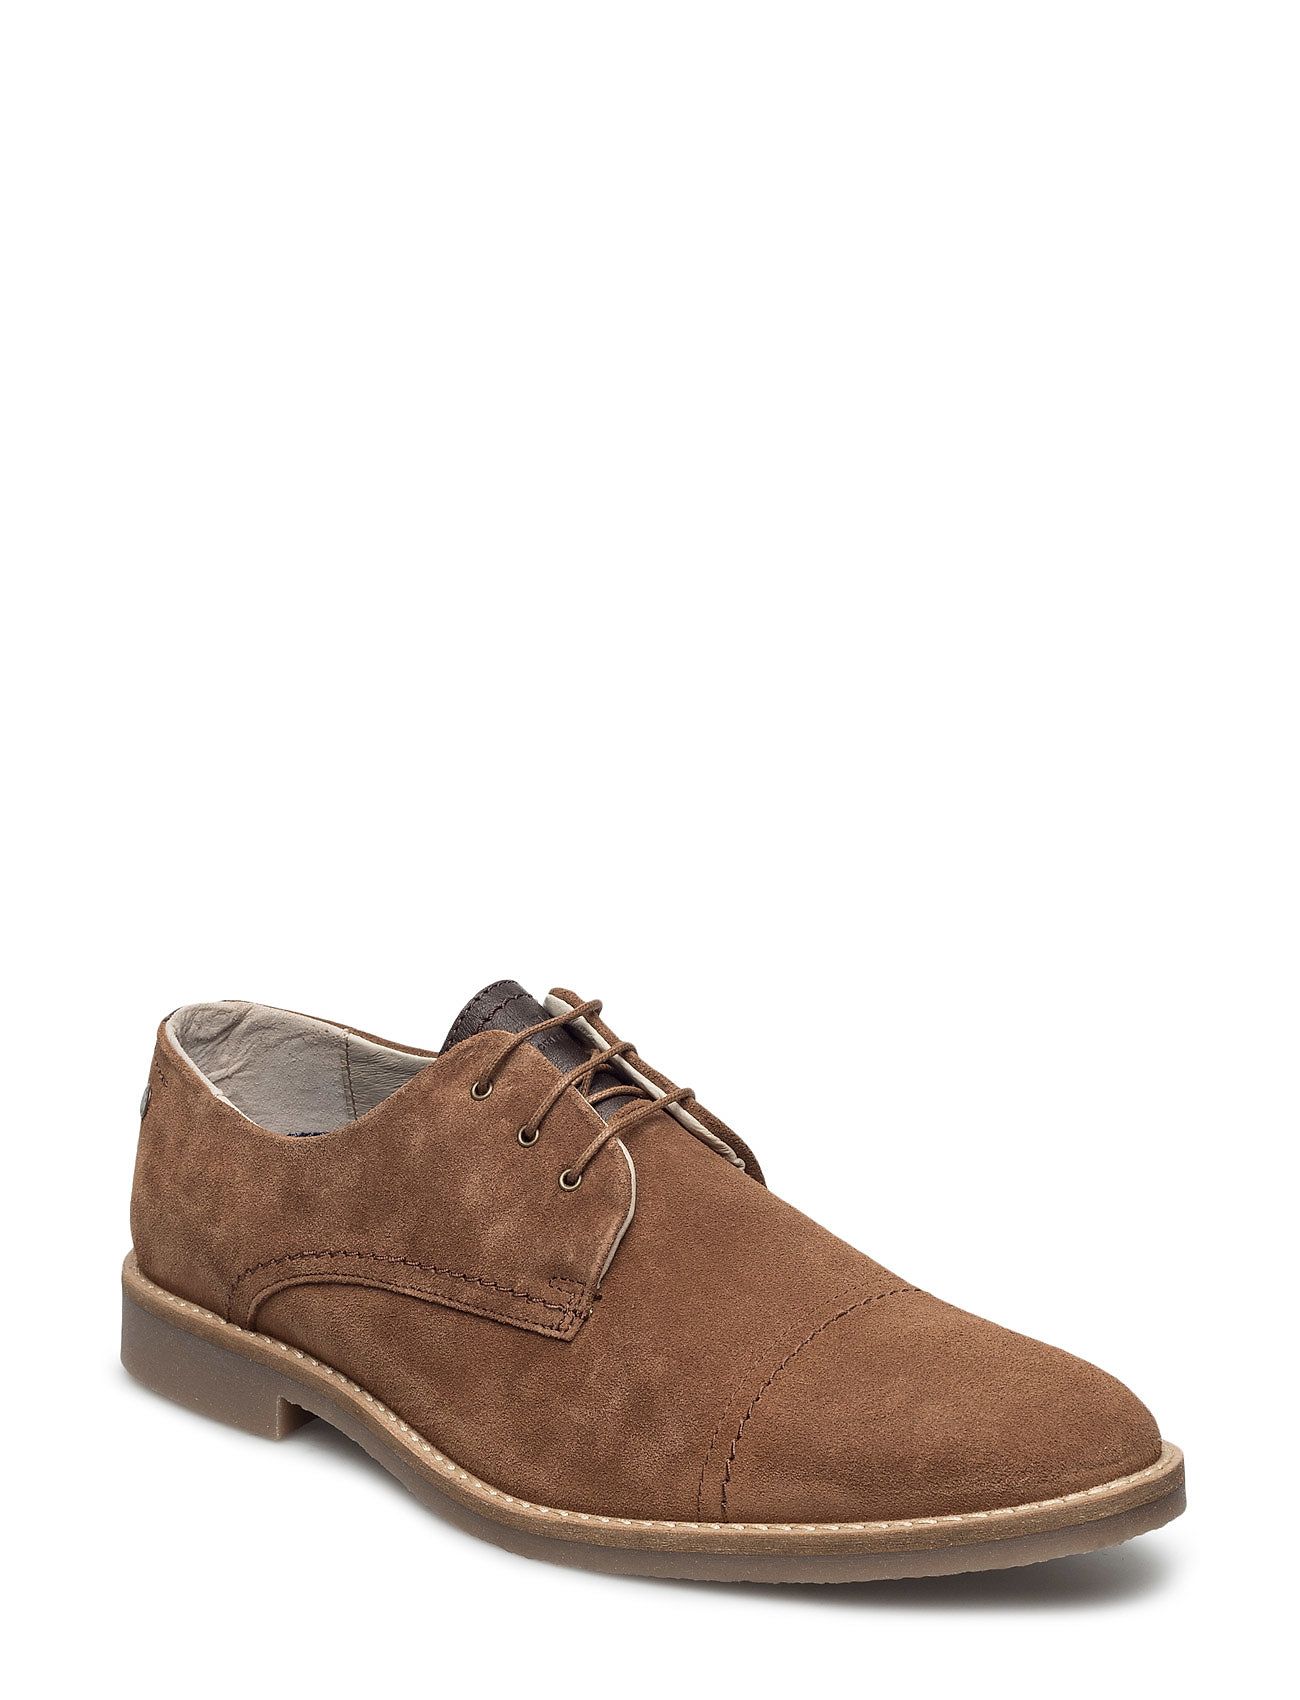 Jfwbilly Suede Cognac Jack & Jones Business til Herrer i cognac